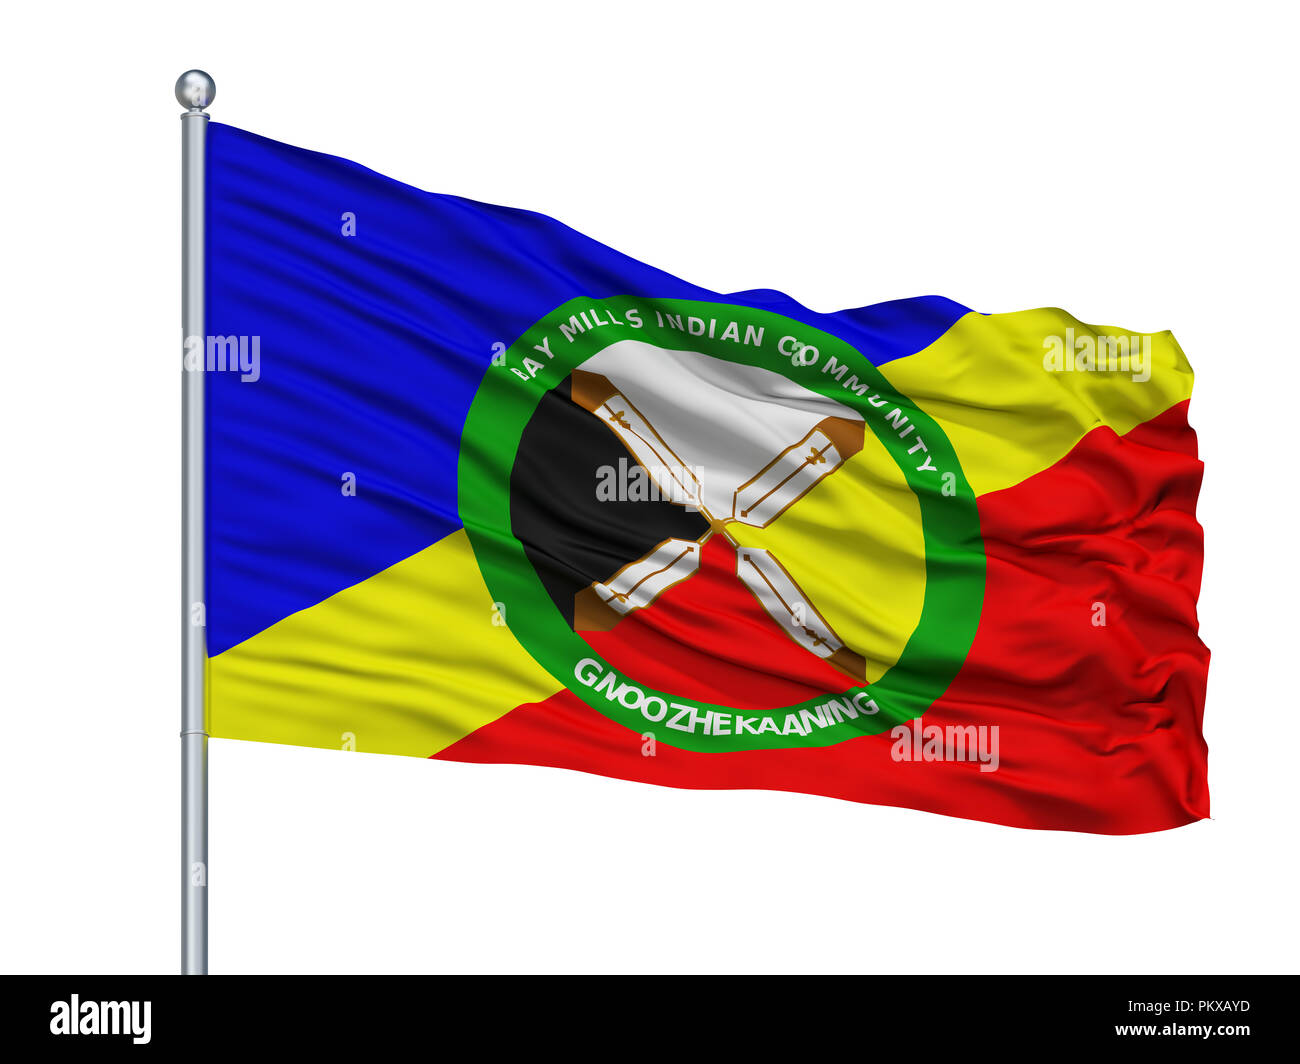 Bay Mills Community Indian Flag On Flagpole, Isolated On White Background, 3D Rendering - Stock Image